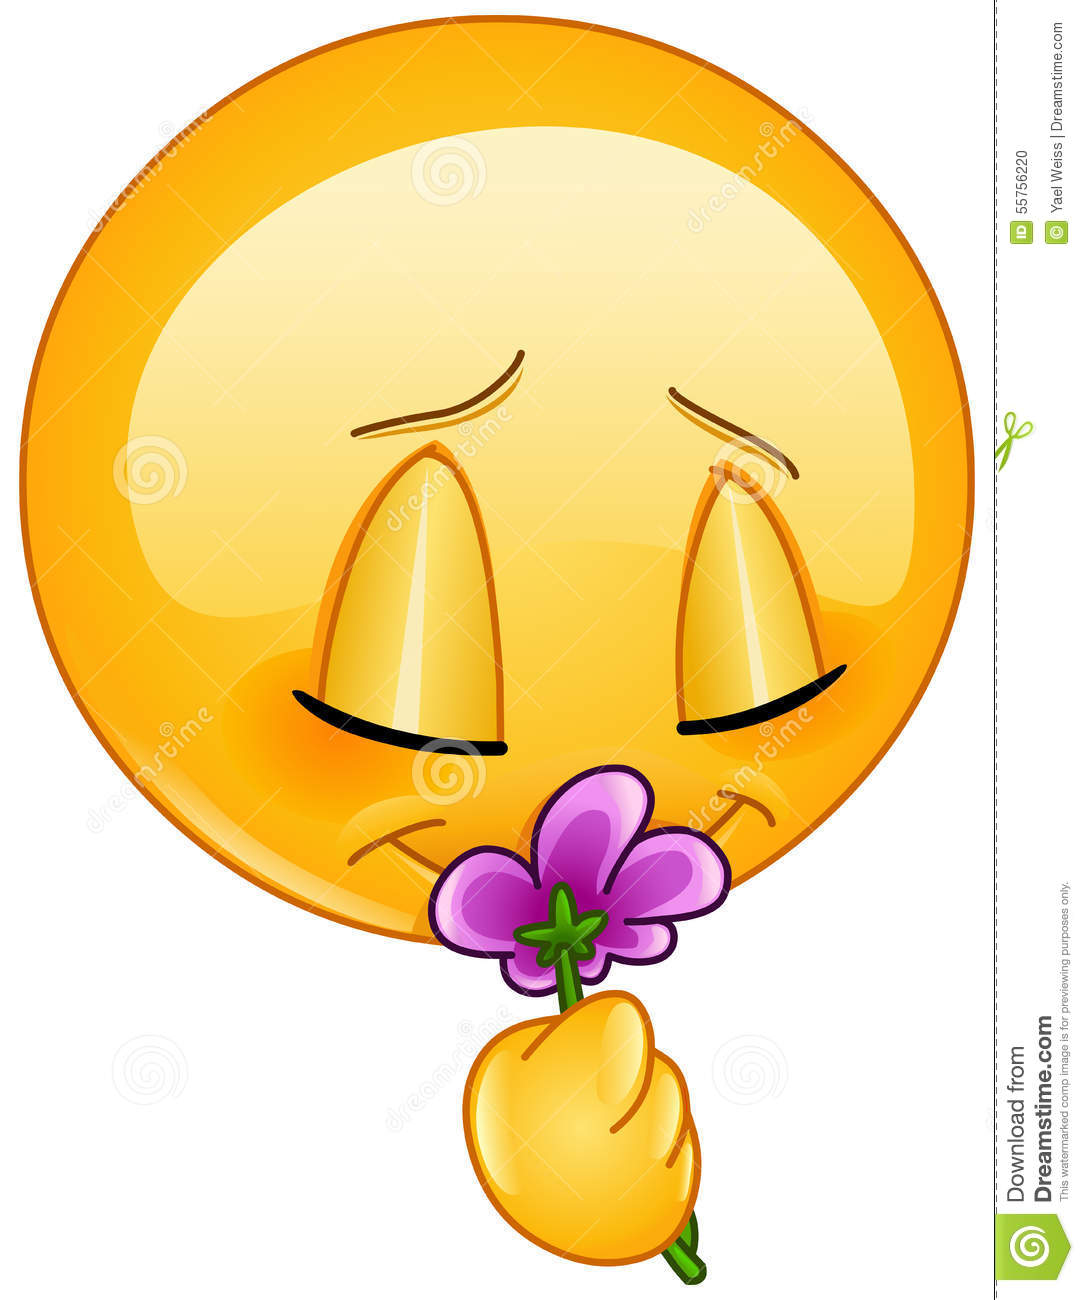 Smelling Flower Emoticon Stock Vector. Image Of Floral